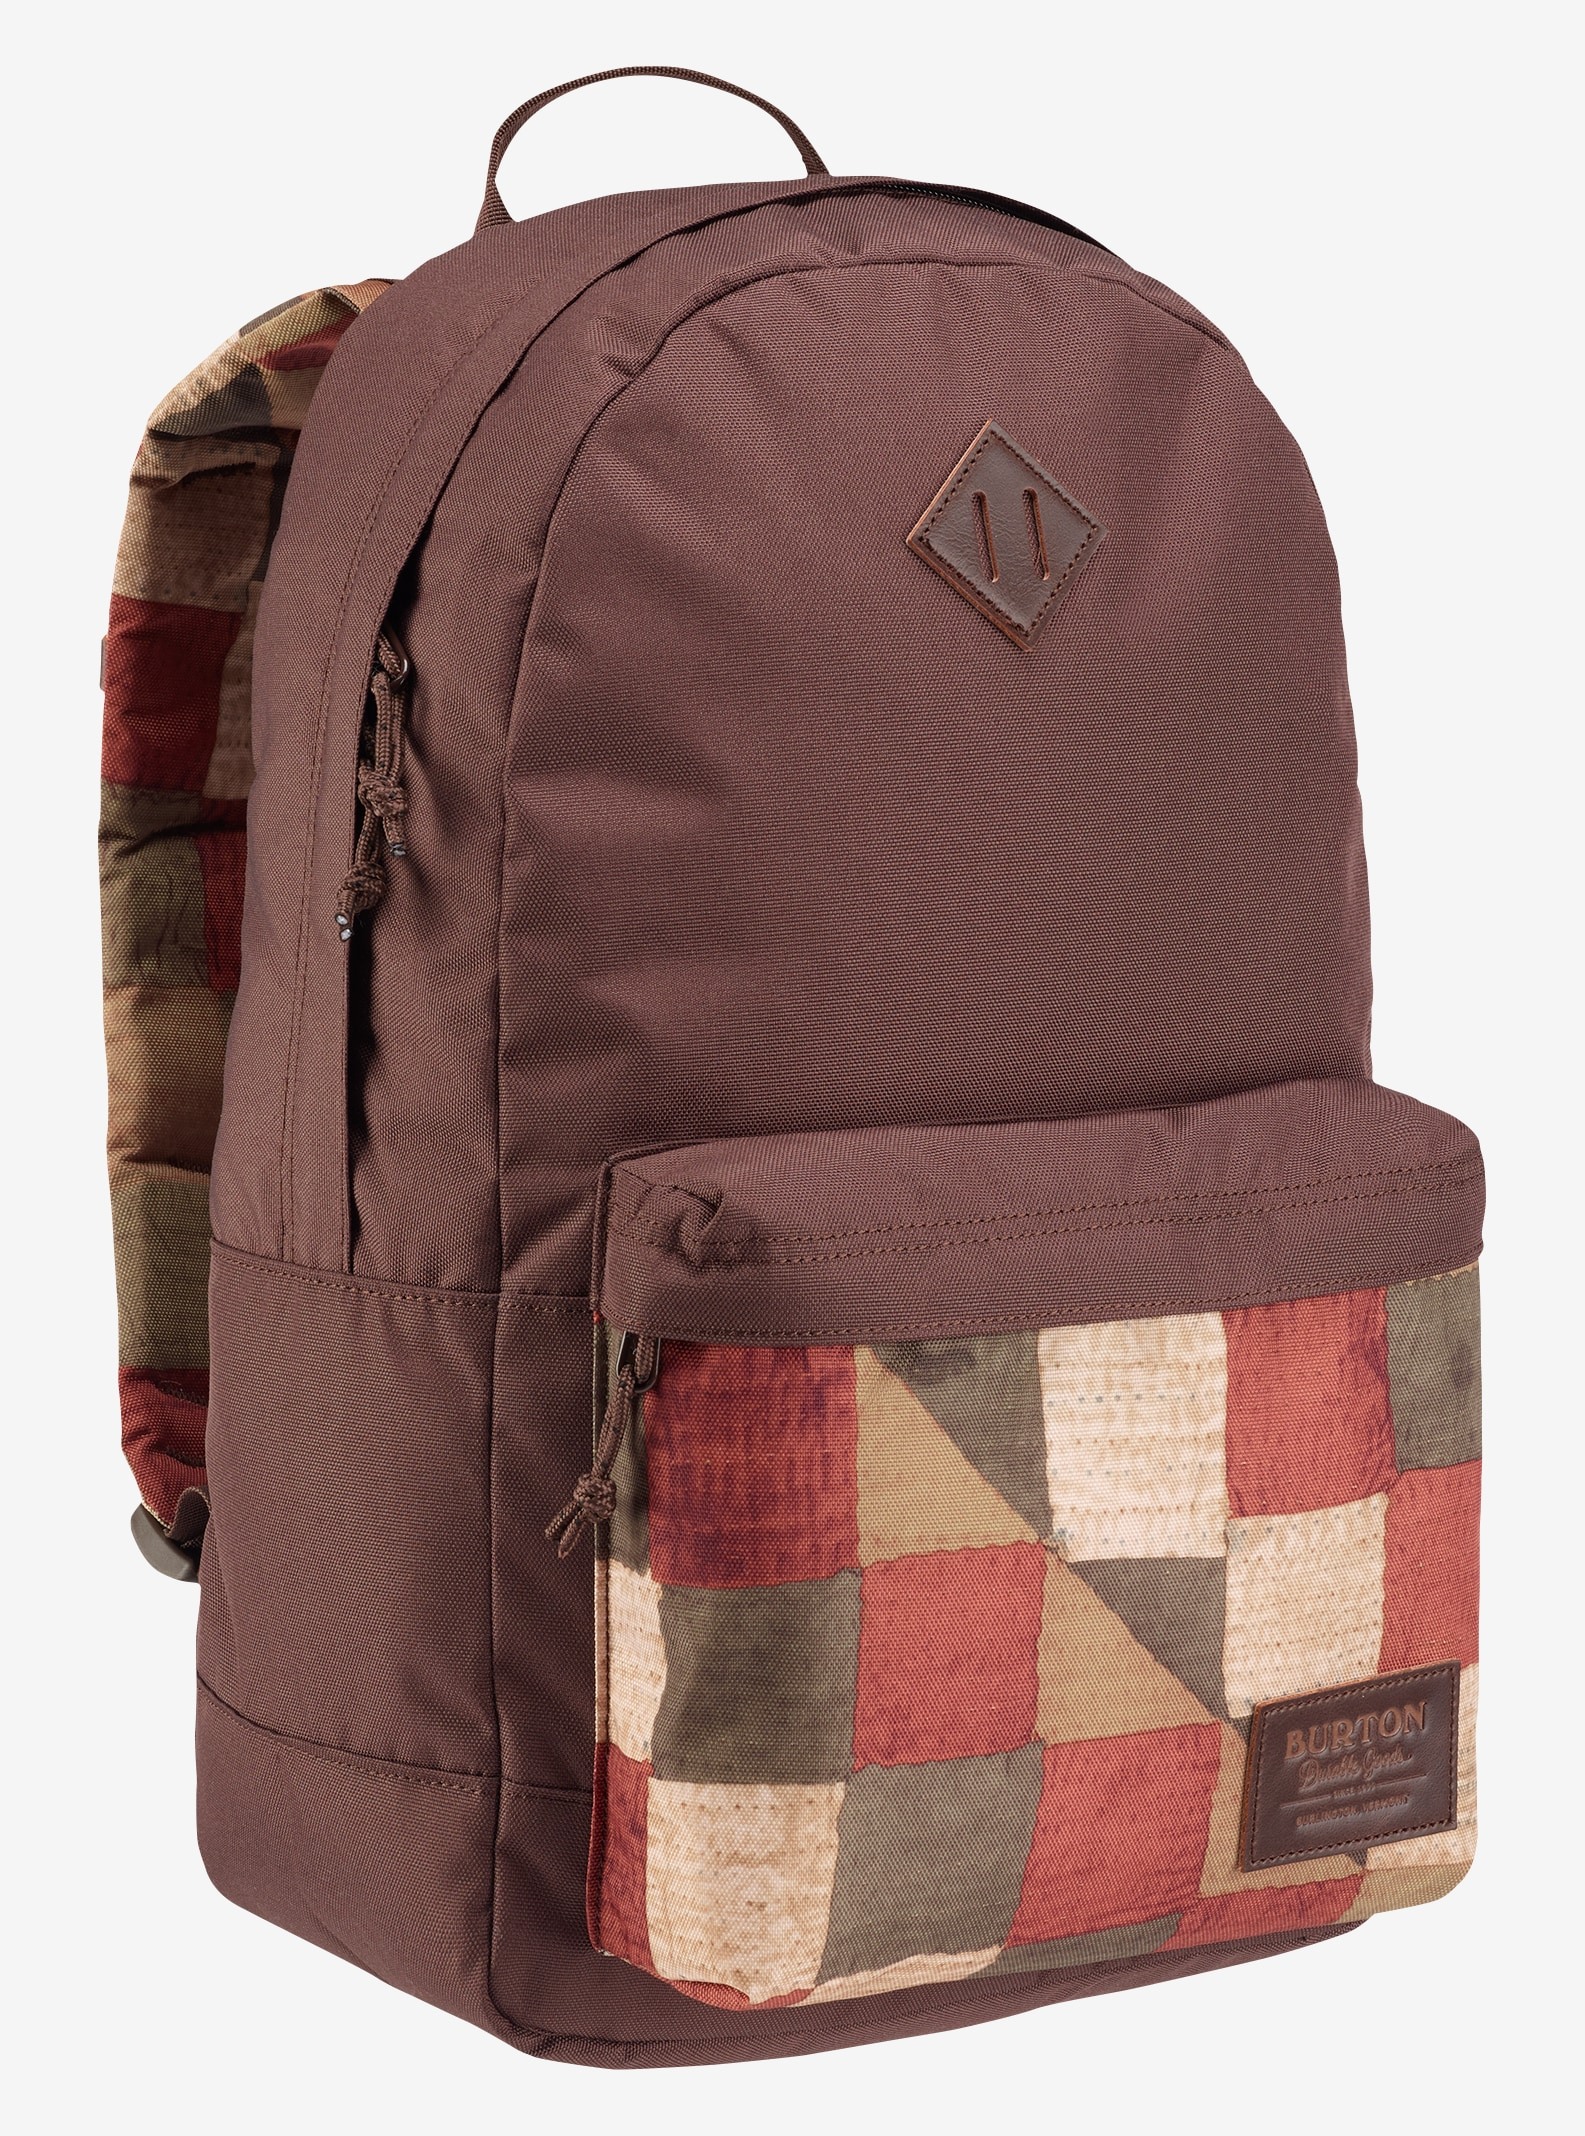 Burton Kettle Backpack shown in Montreux Print